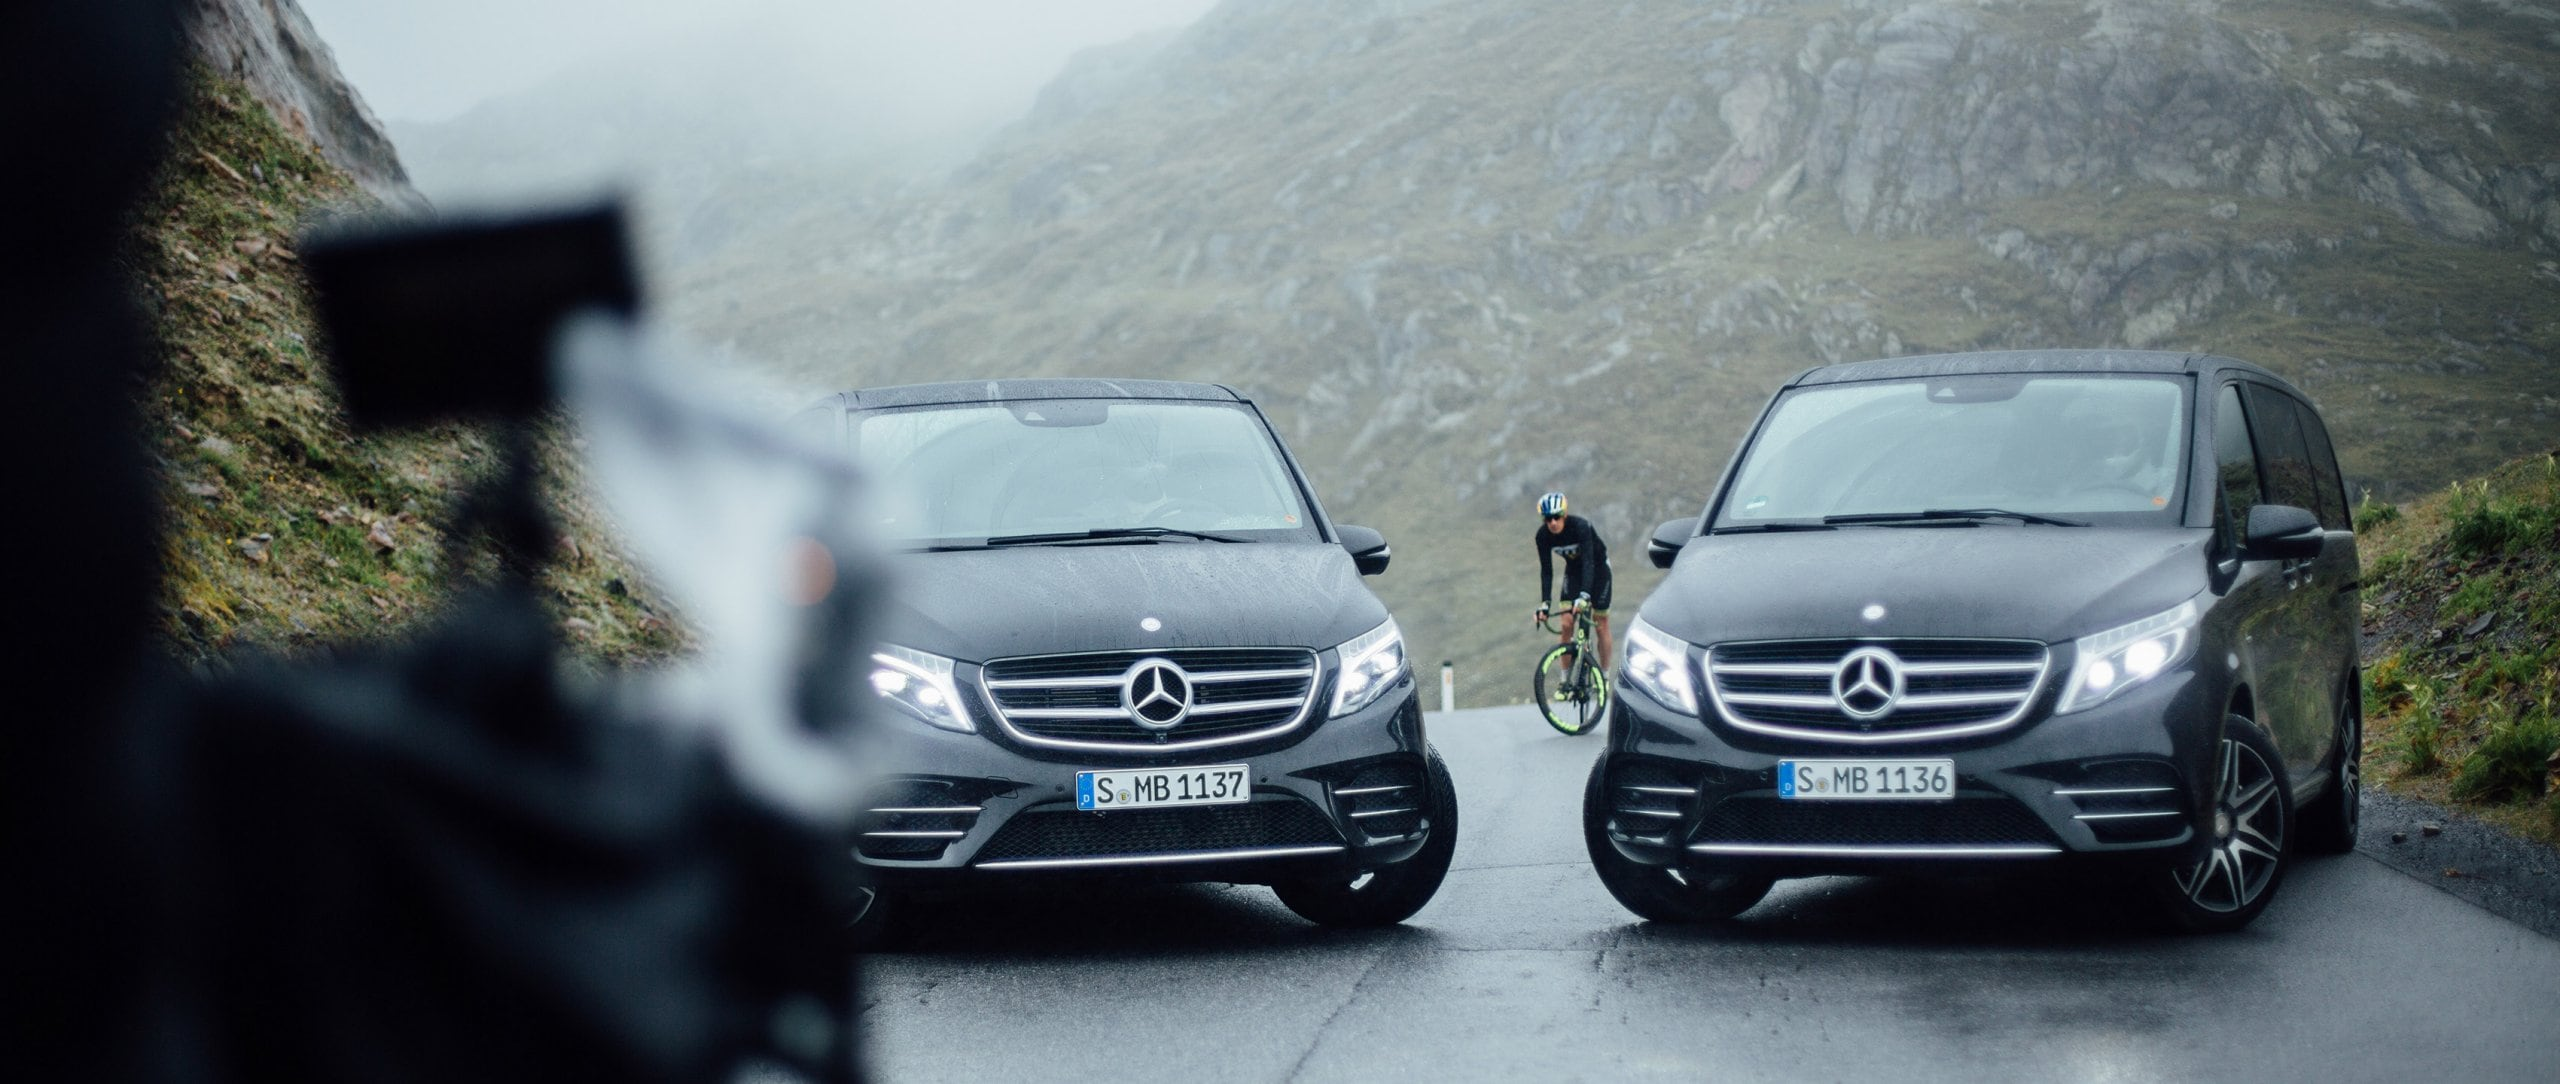 During a ride on his racing bike, Sebastian Kienle finds his way blocked by two Mercedes-Benz V-Class vehicles.